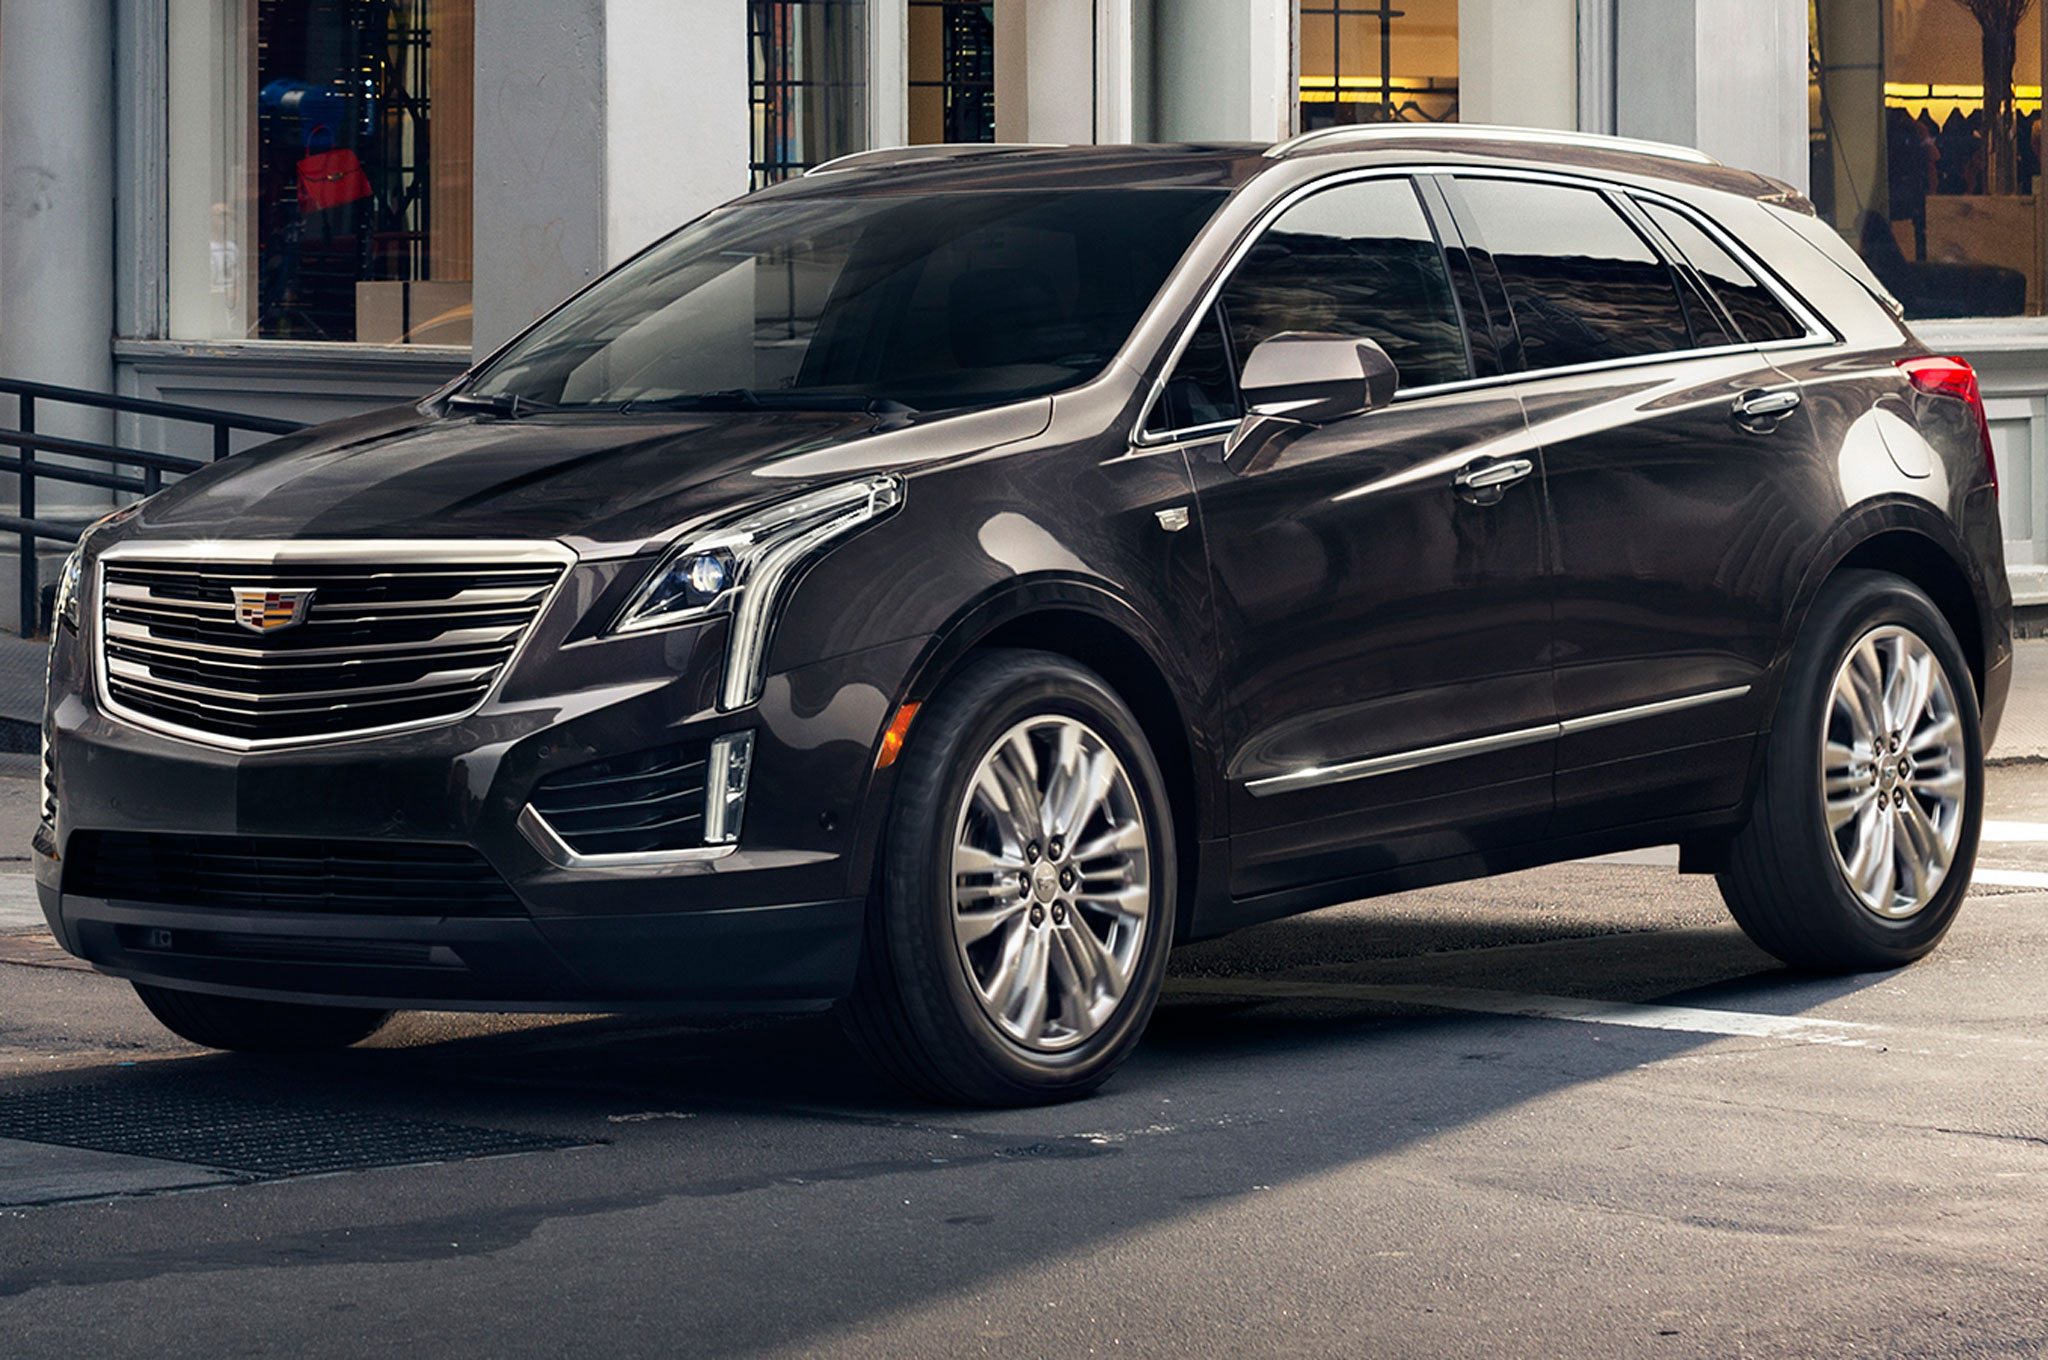 2017 cadillac xt5 suv earns top safety pick award video. Black Bedroom Furniture Sets. Home Design Ideas